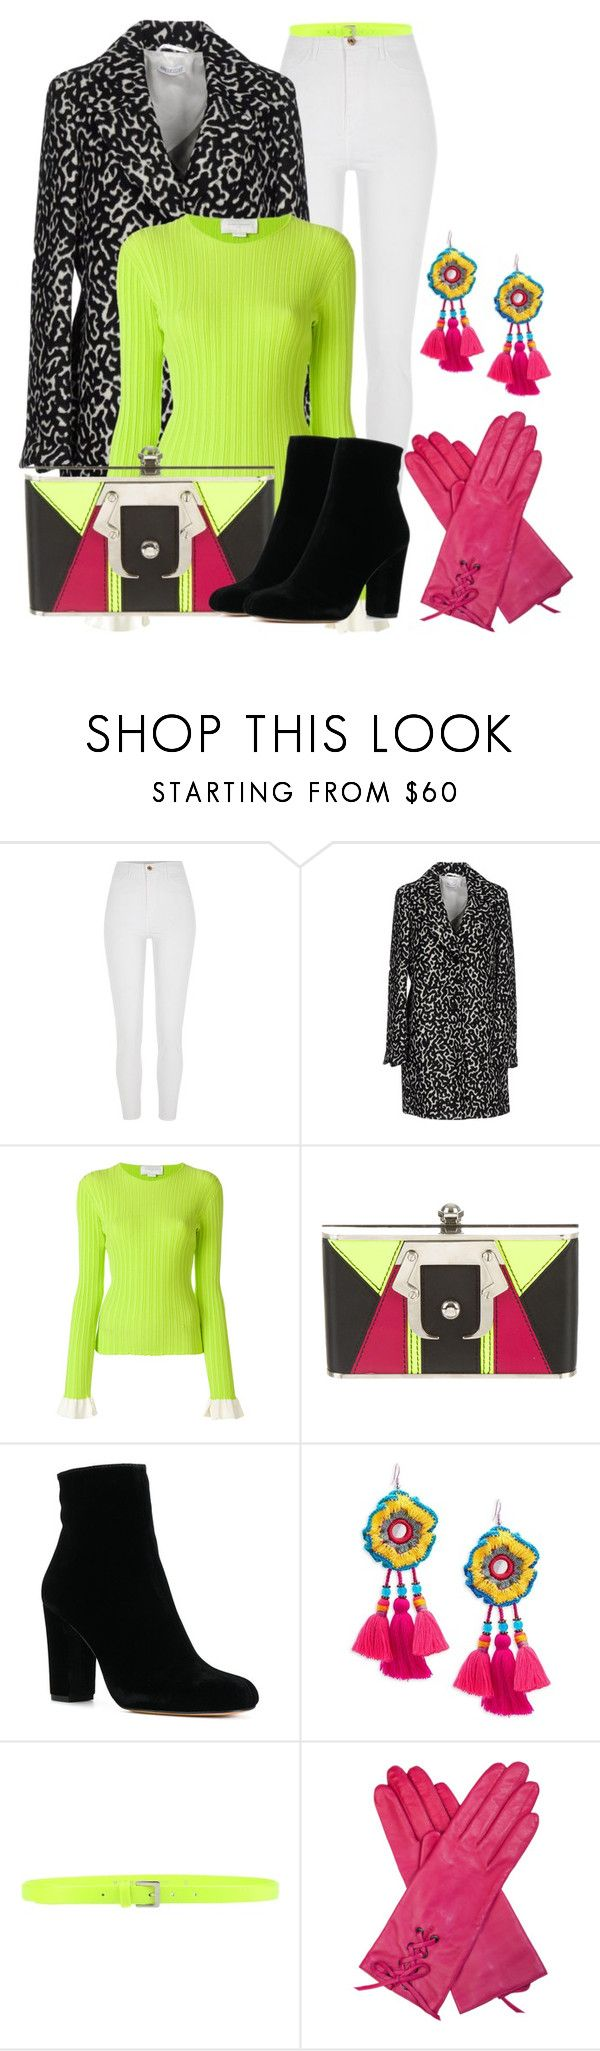 """January Pop of Color"" by lchar ❤ liked on Polyvore featuring River Island, St.Emile, Esteban Cortazar, Paula Cademartori, Panacea and P.A.R.O.S.H."